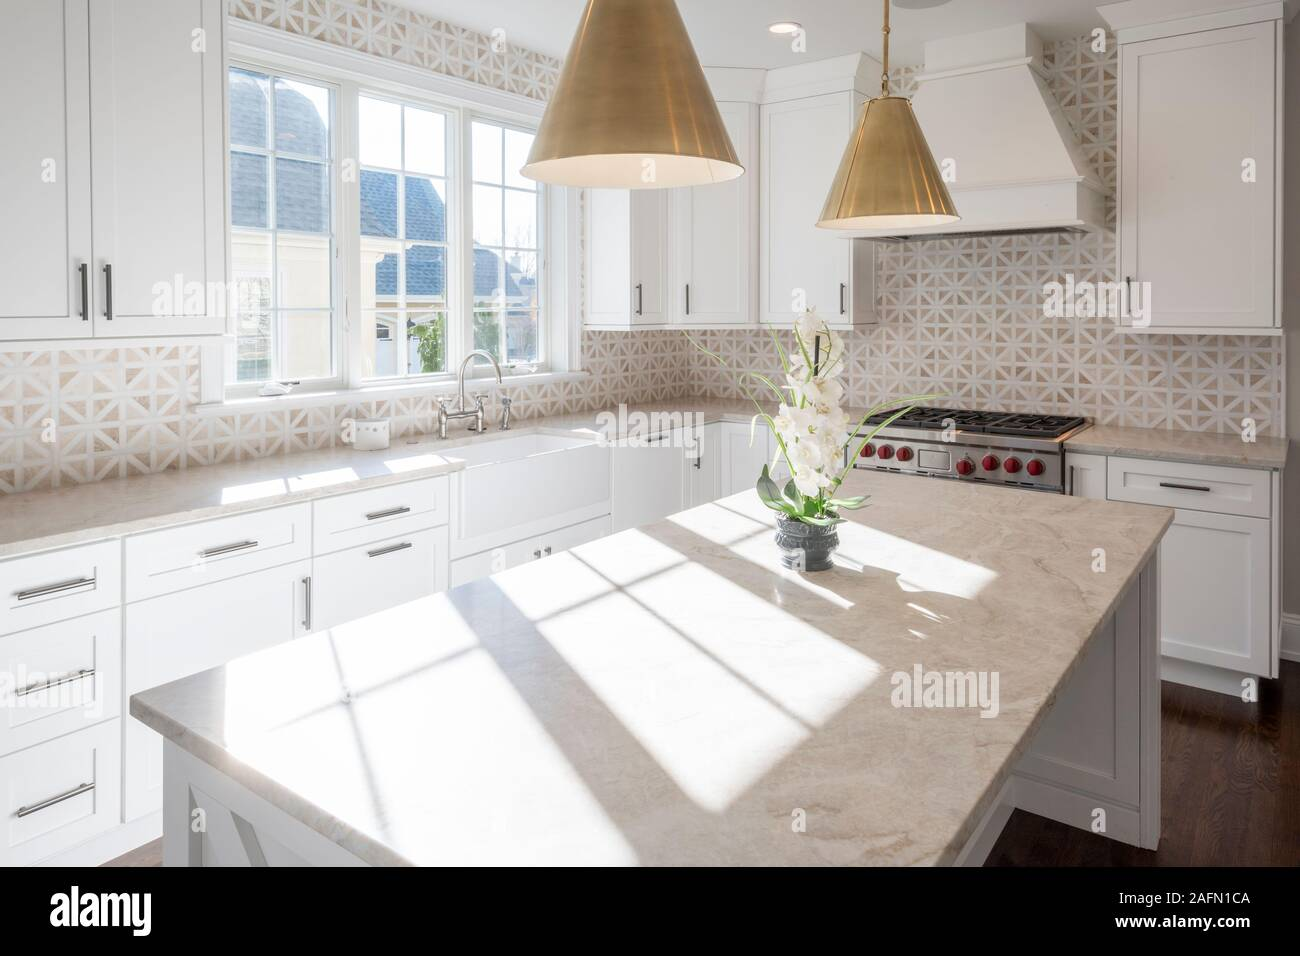 Sun Drenched Kitchen Interior Stock Photo